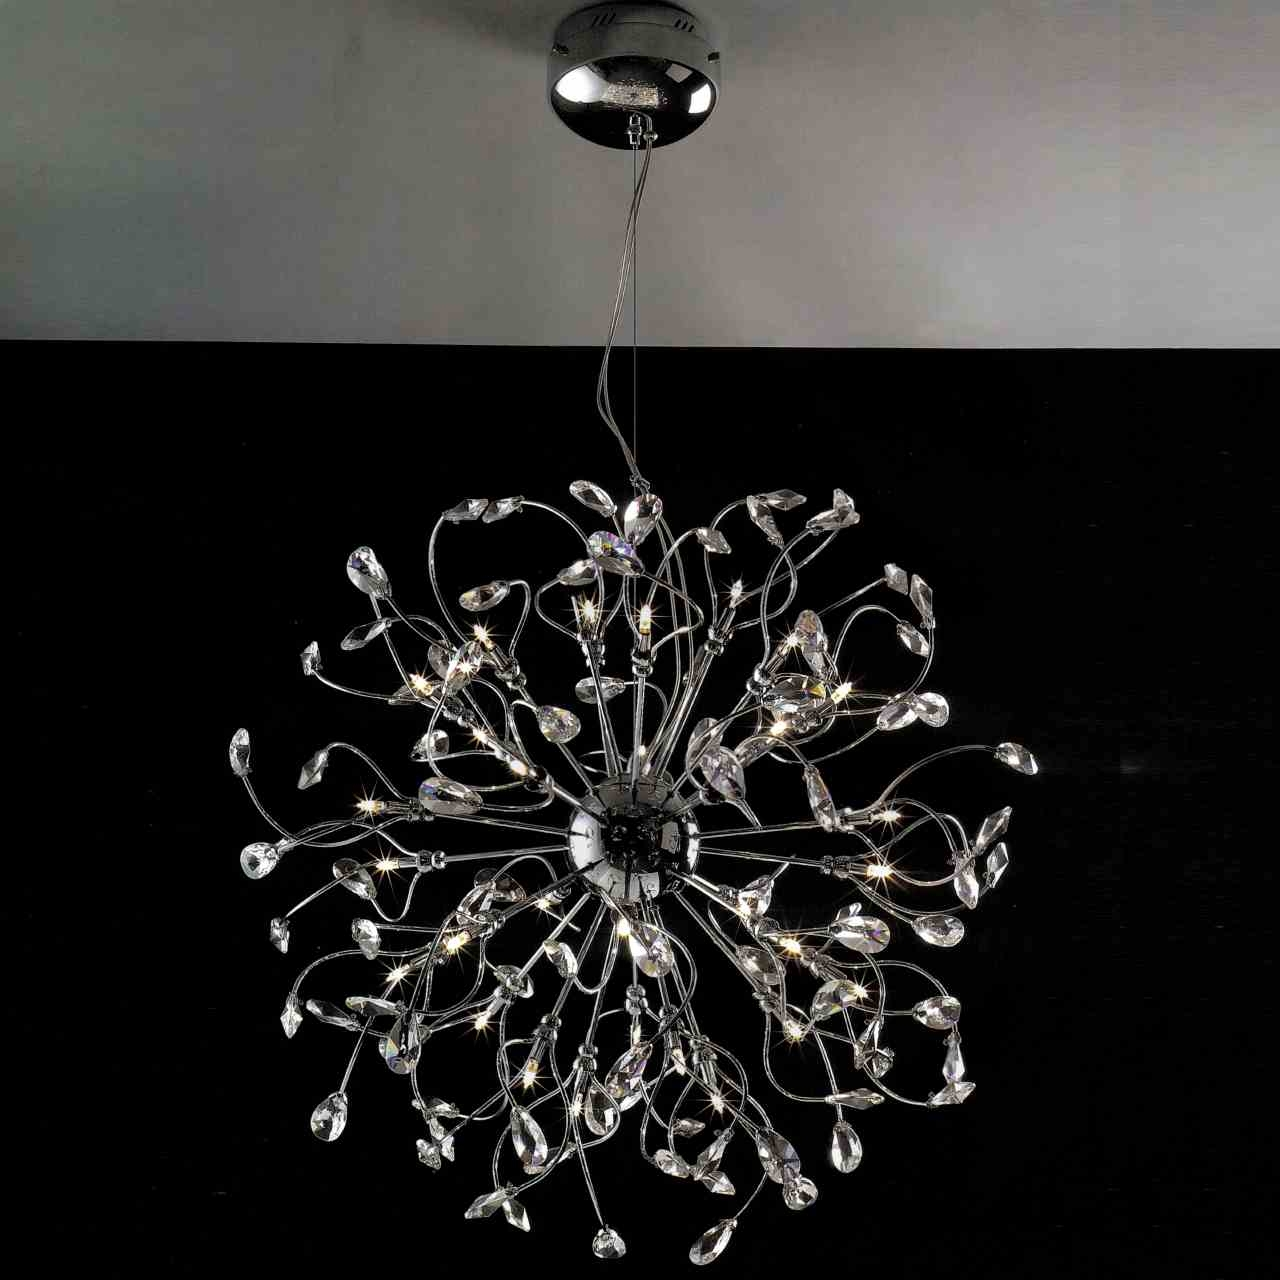 Brizzo Lighting Stores 19 Tempesta Modern Crystal Flush Mount Regarding Chrome And Crystal Chandeliers (View 16 of 25)